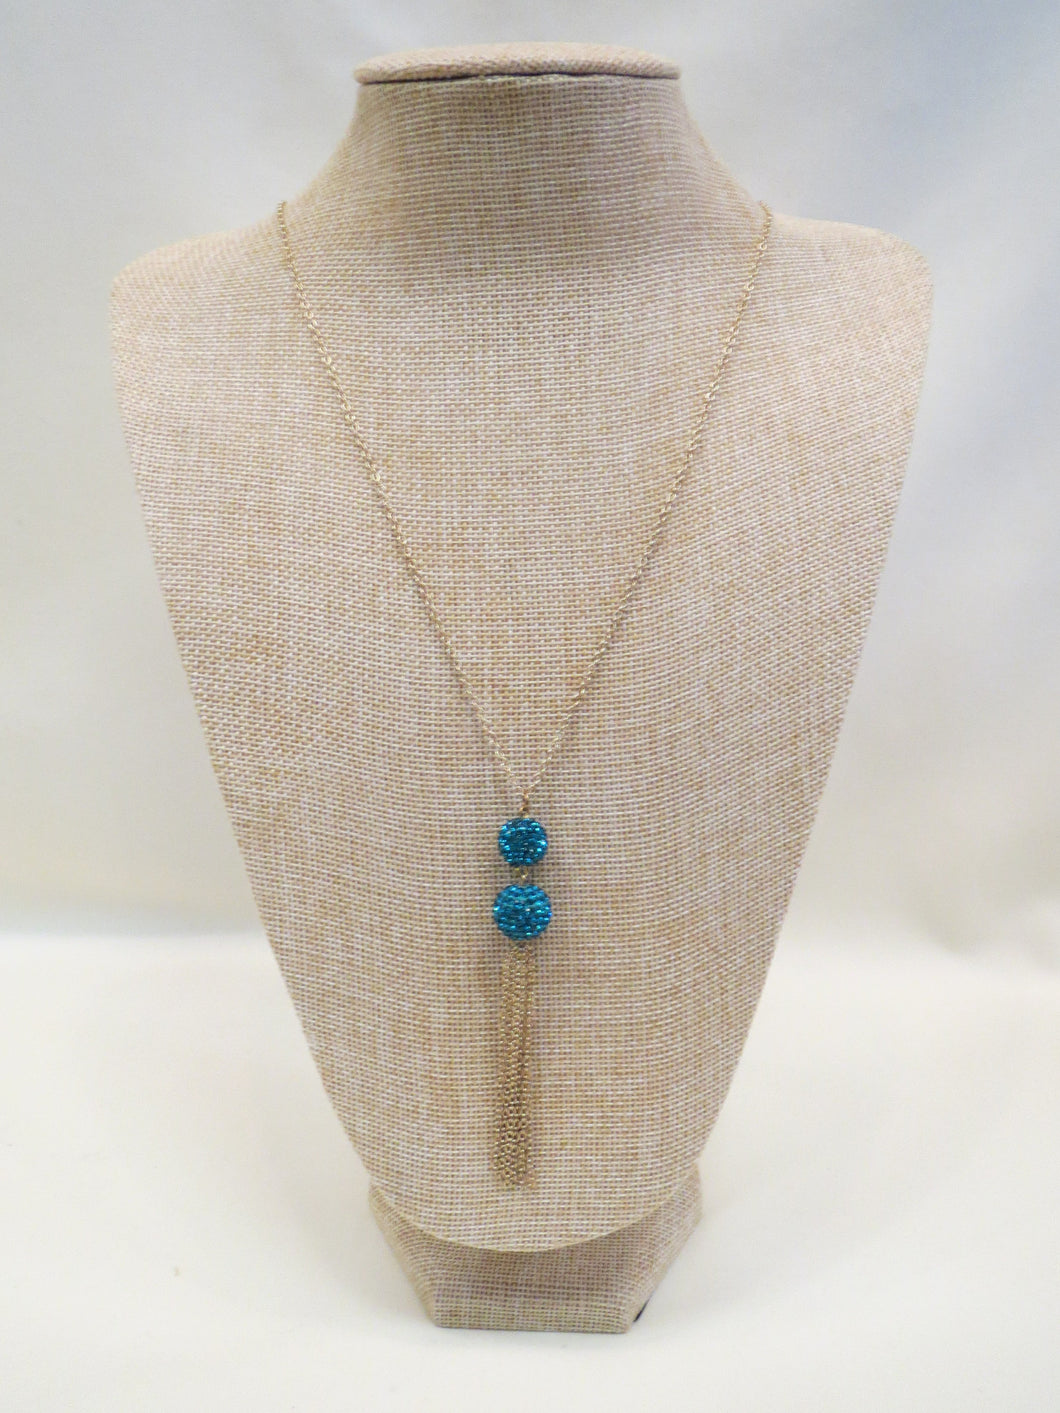 ADO Blue Swarovski Twin Tassel Necklace | All Dec'd Out